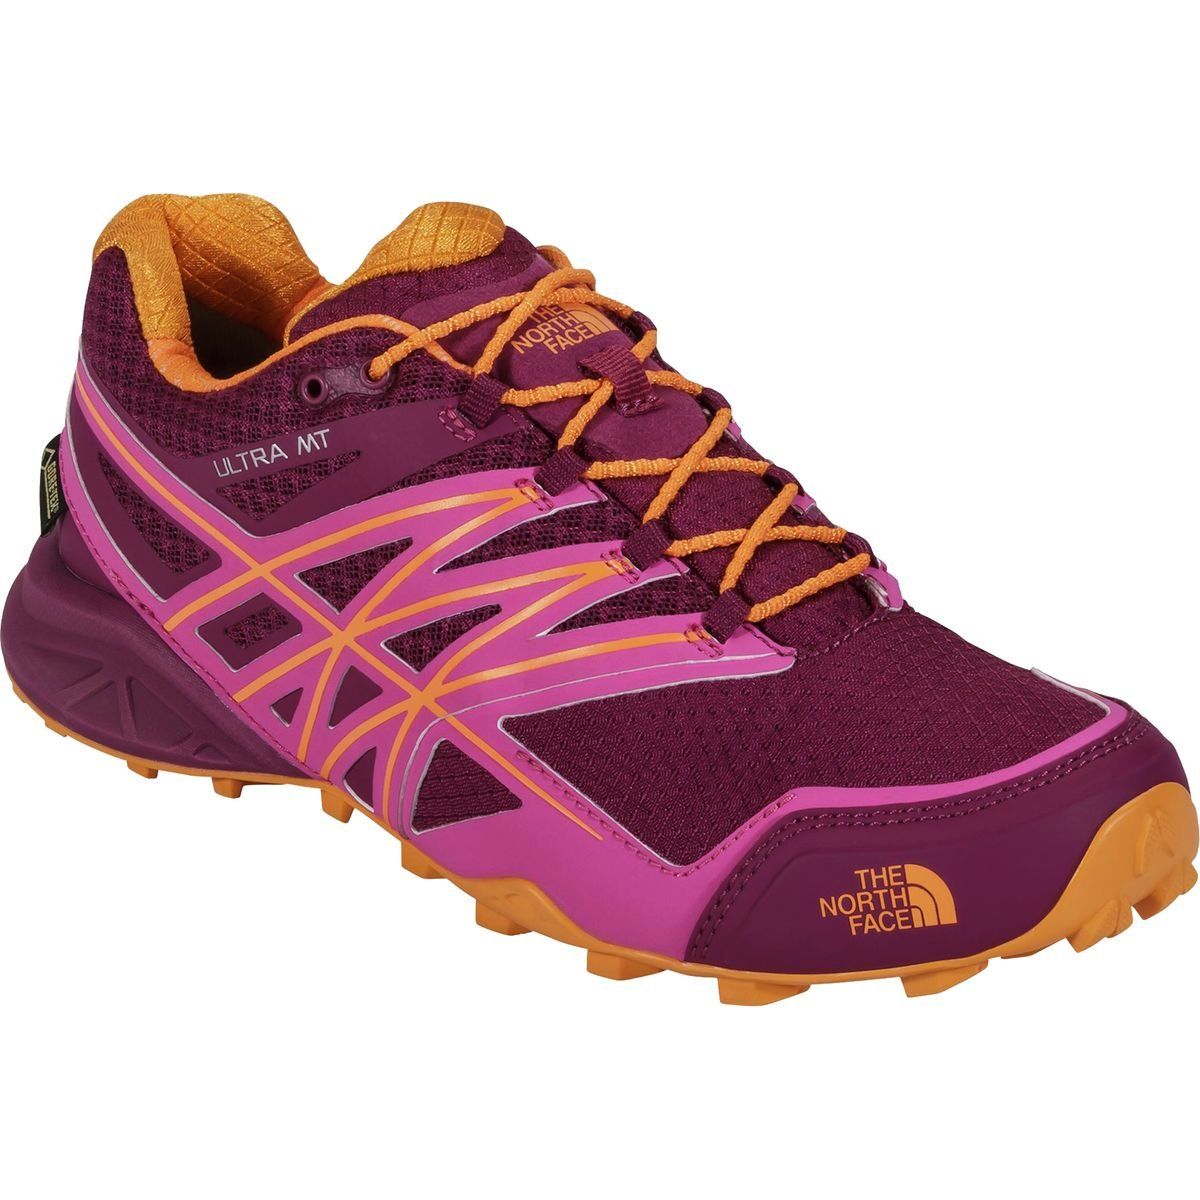 d10320264 Amazon.com   The North Face Women's Ultra MT Gore-TEX Trail Running ...